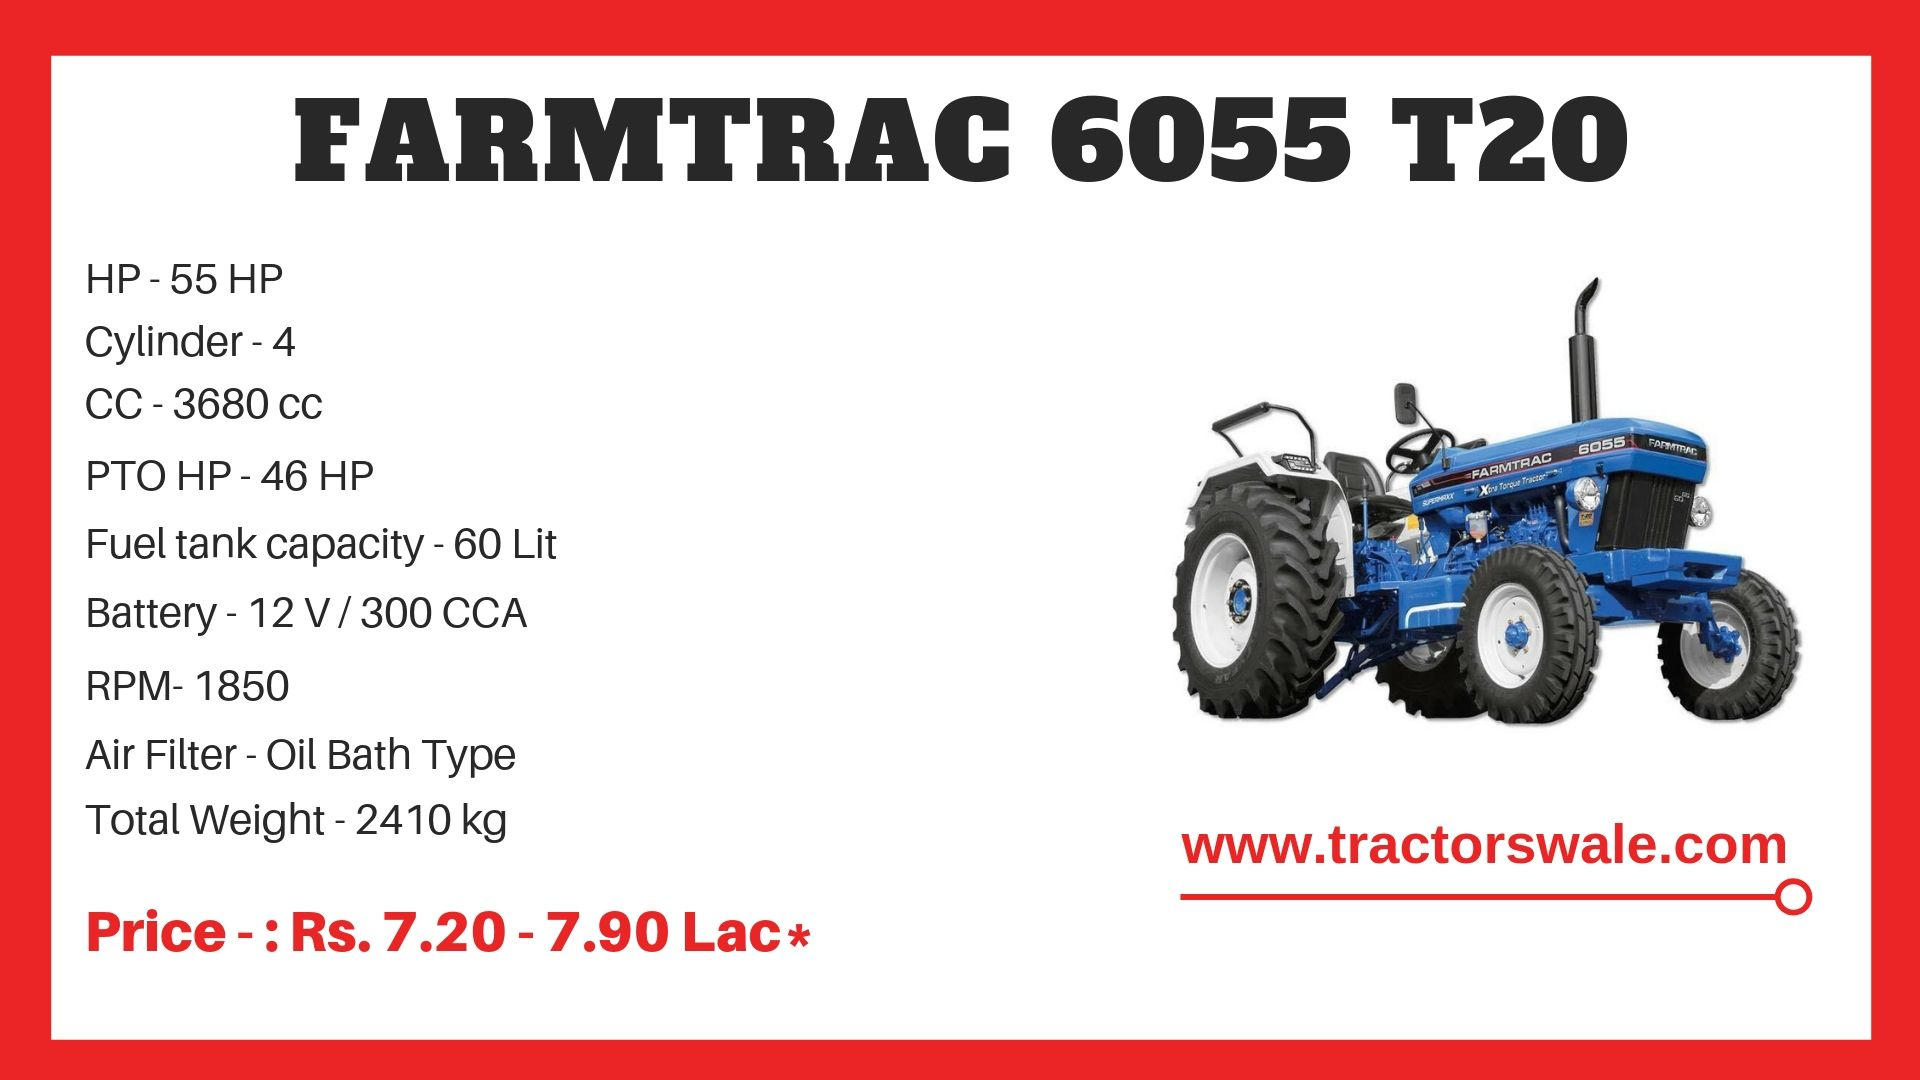 Farmtrac 6055 T20 Escorts Tractor specifications